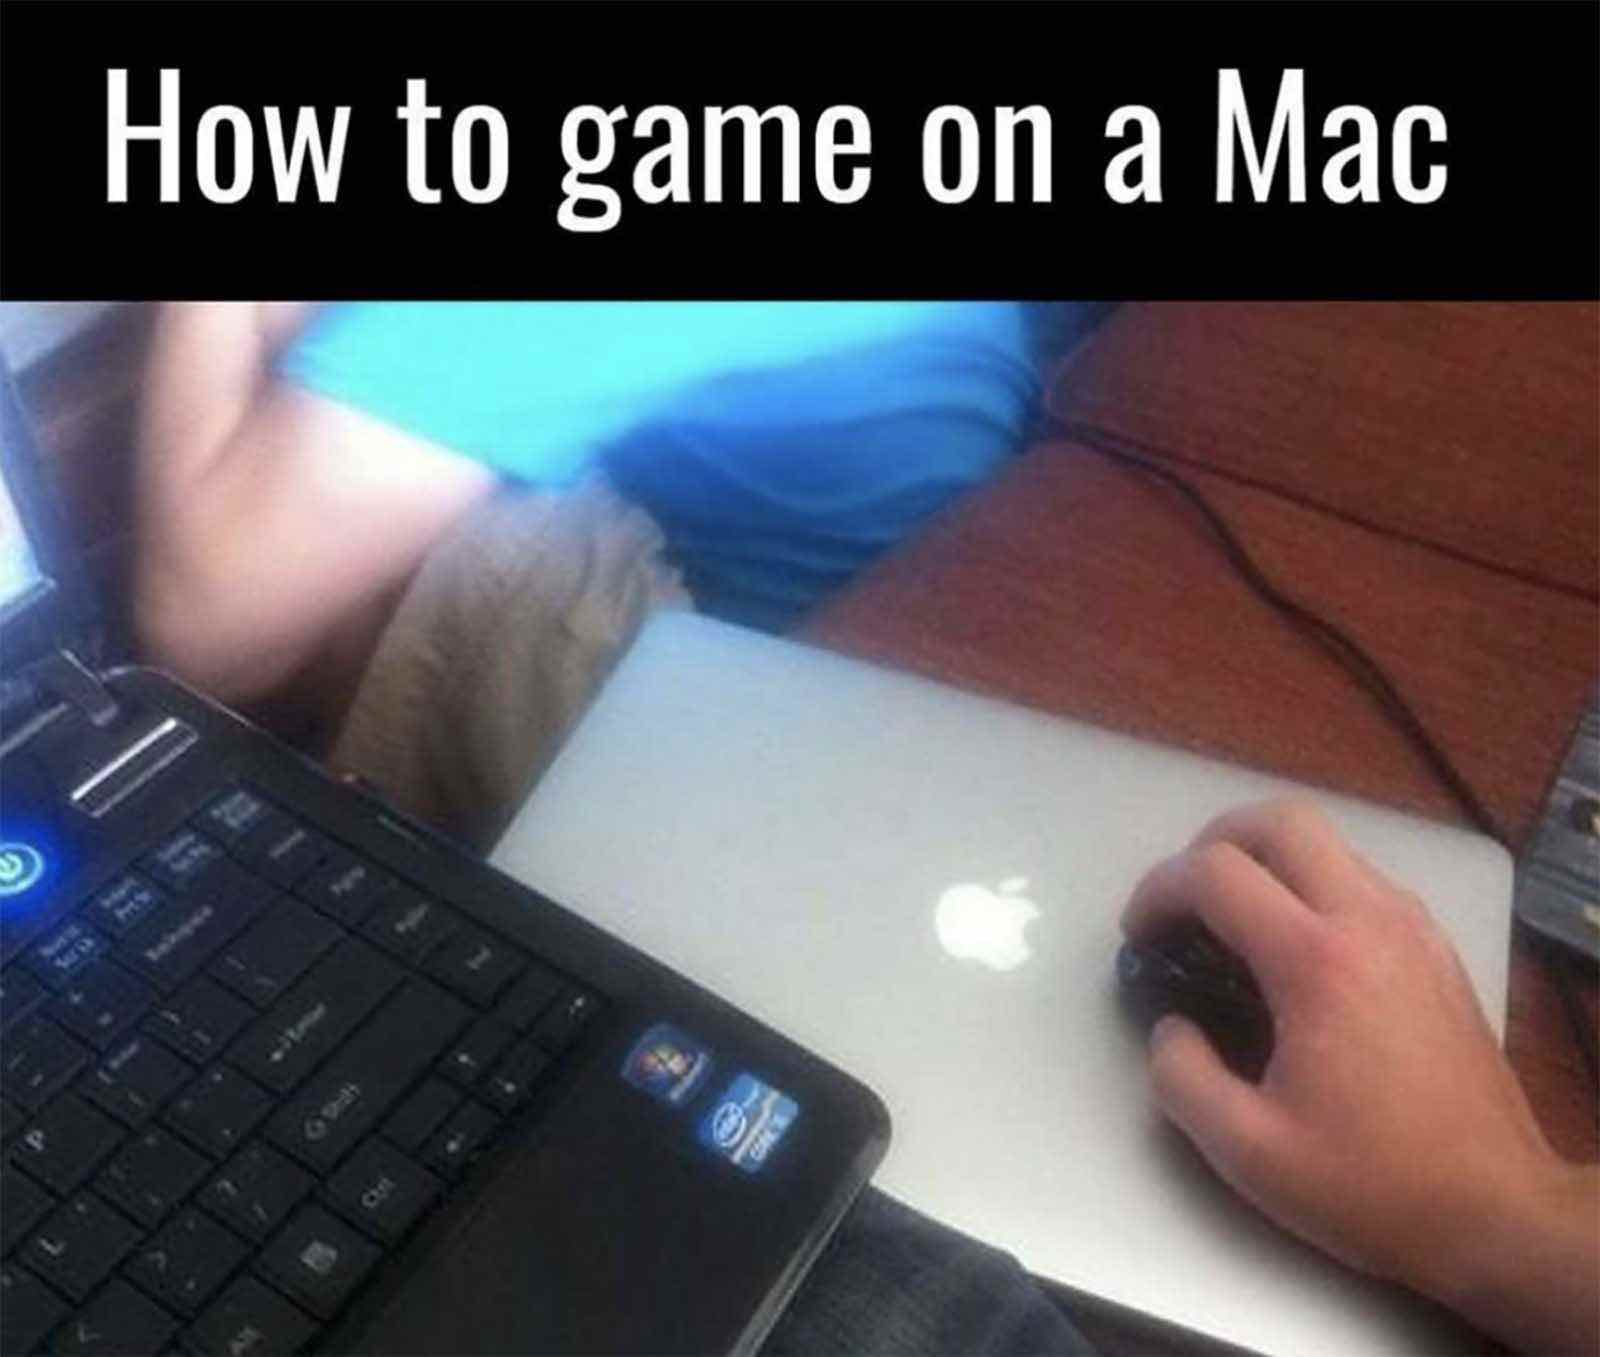 Gaming Memes All The Best Memes Every Gamer Has To Know Film Daily